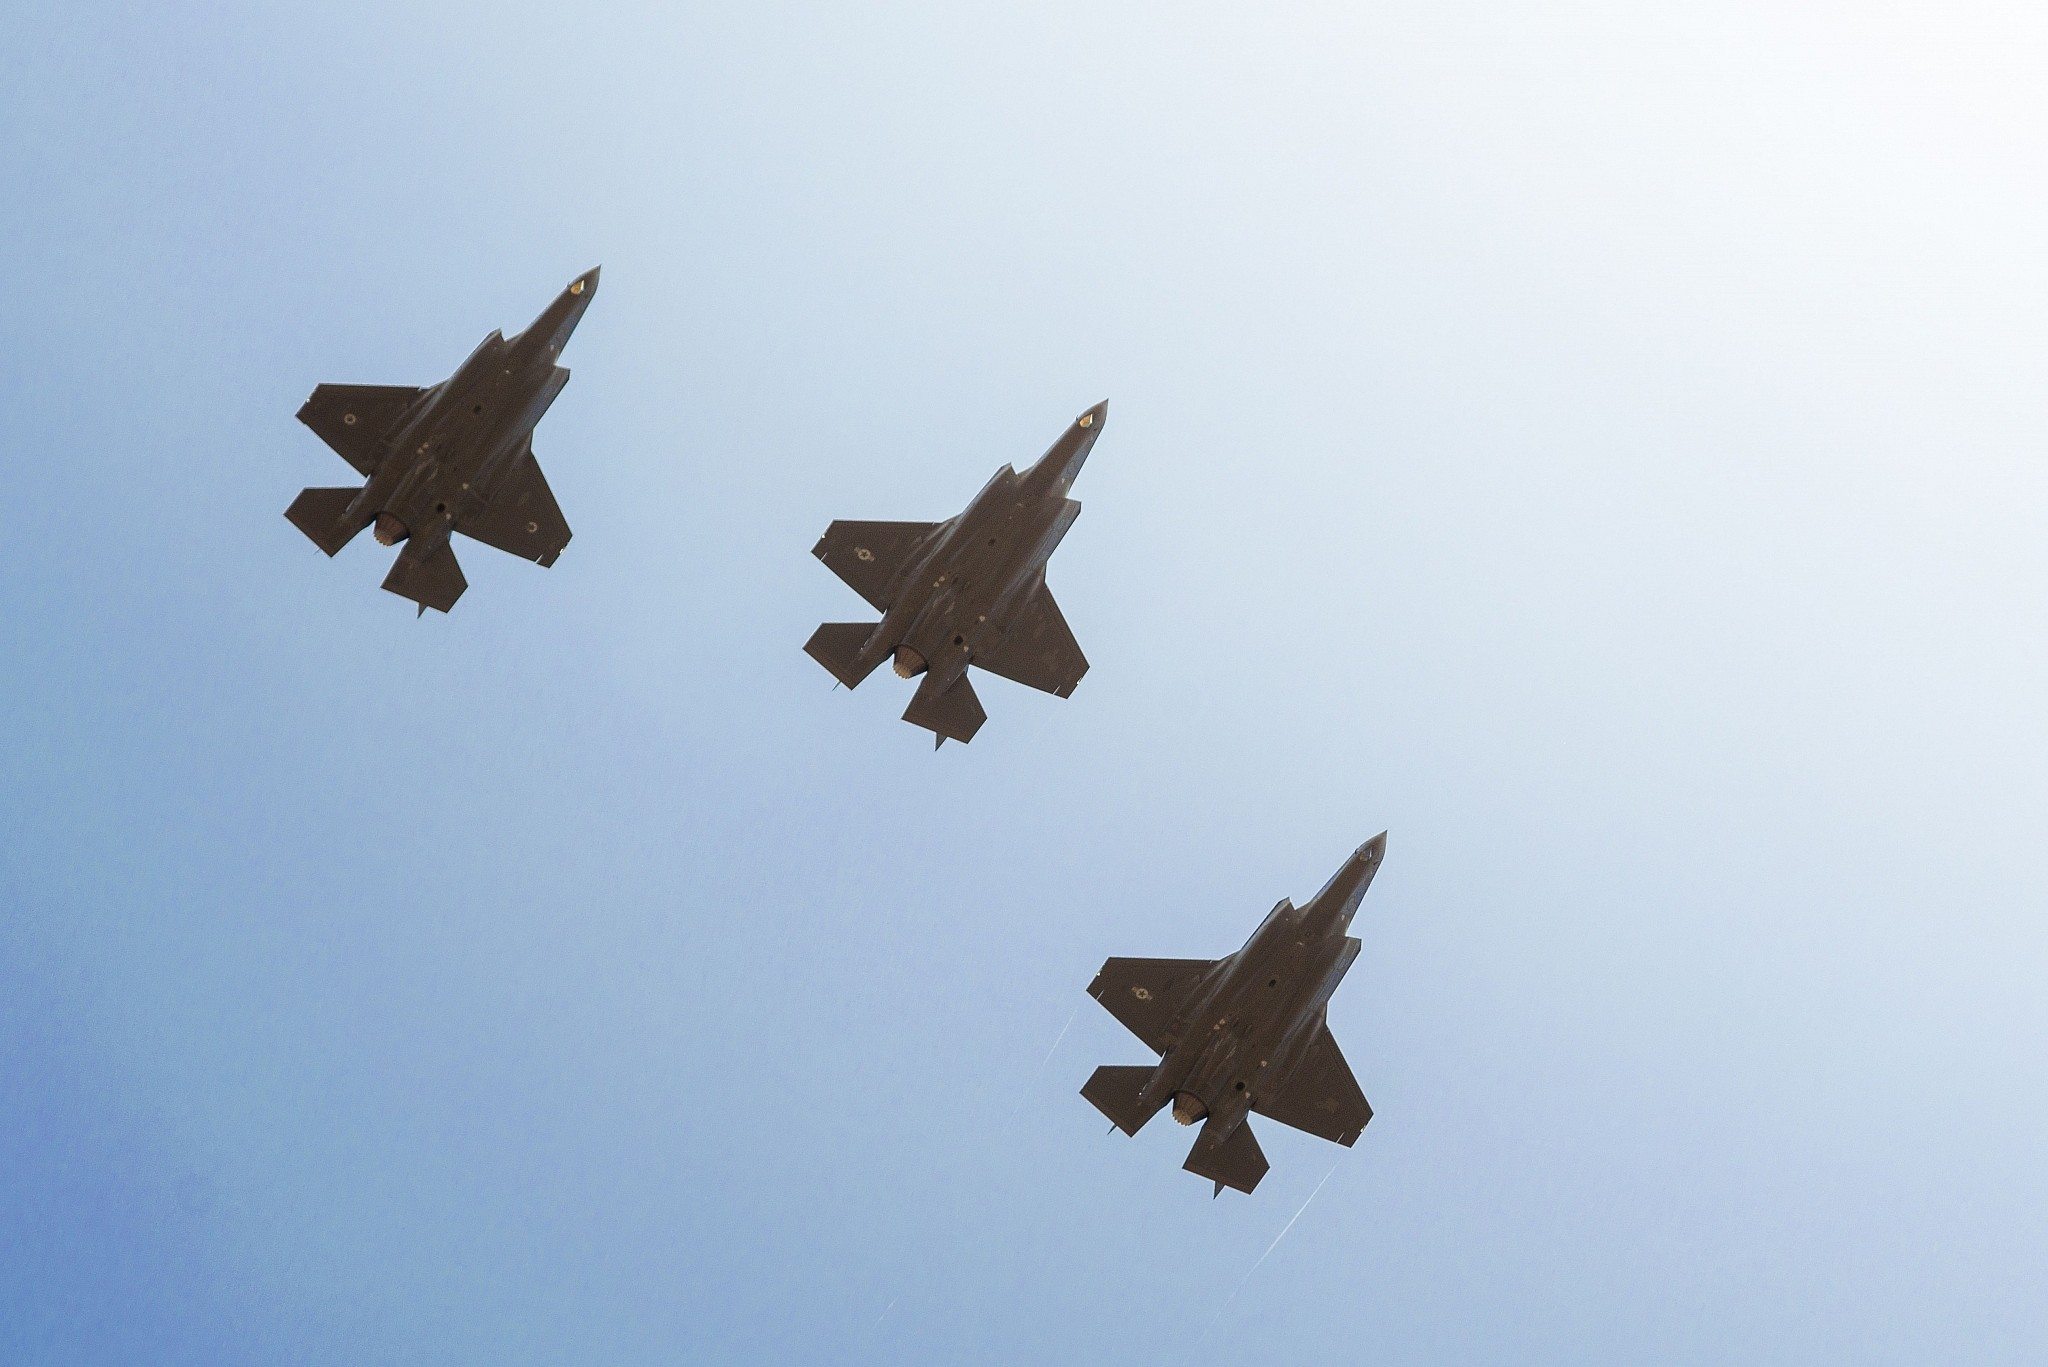 Israel Announces Operational Readiness of F-35s